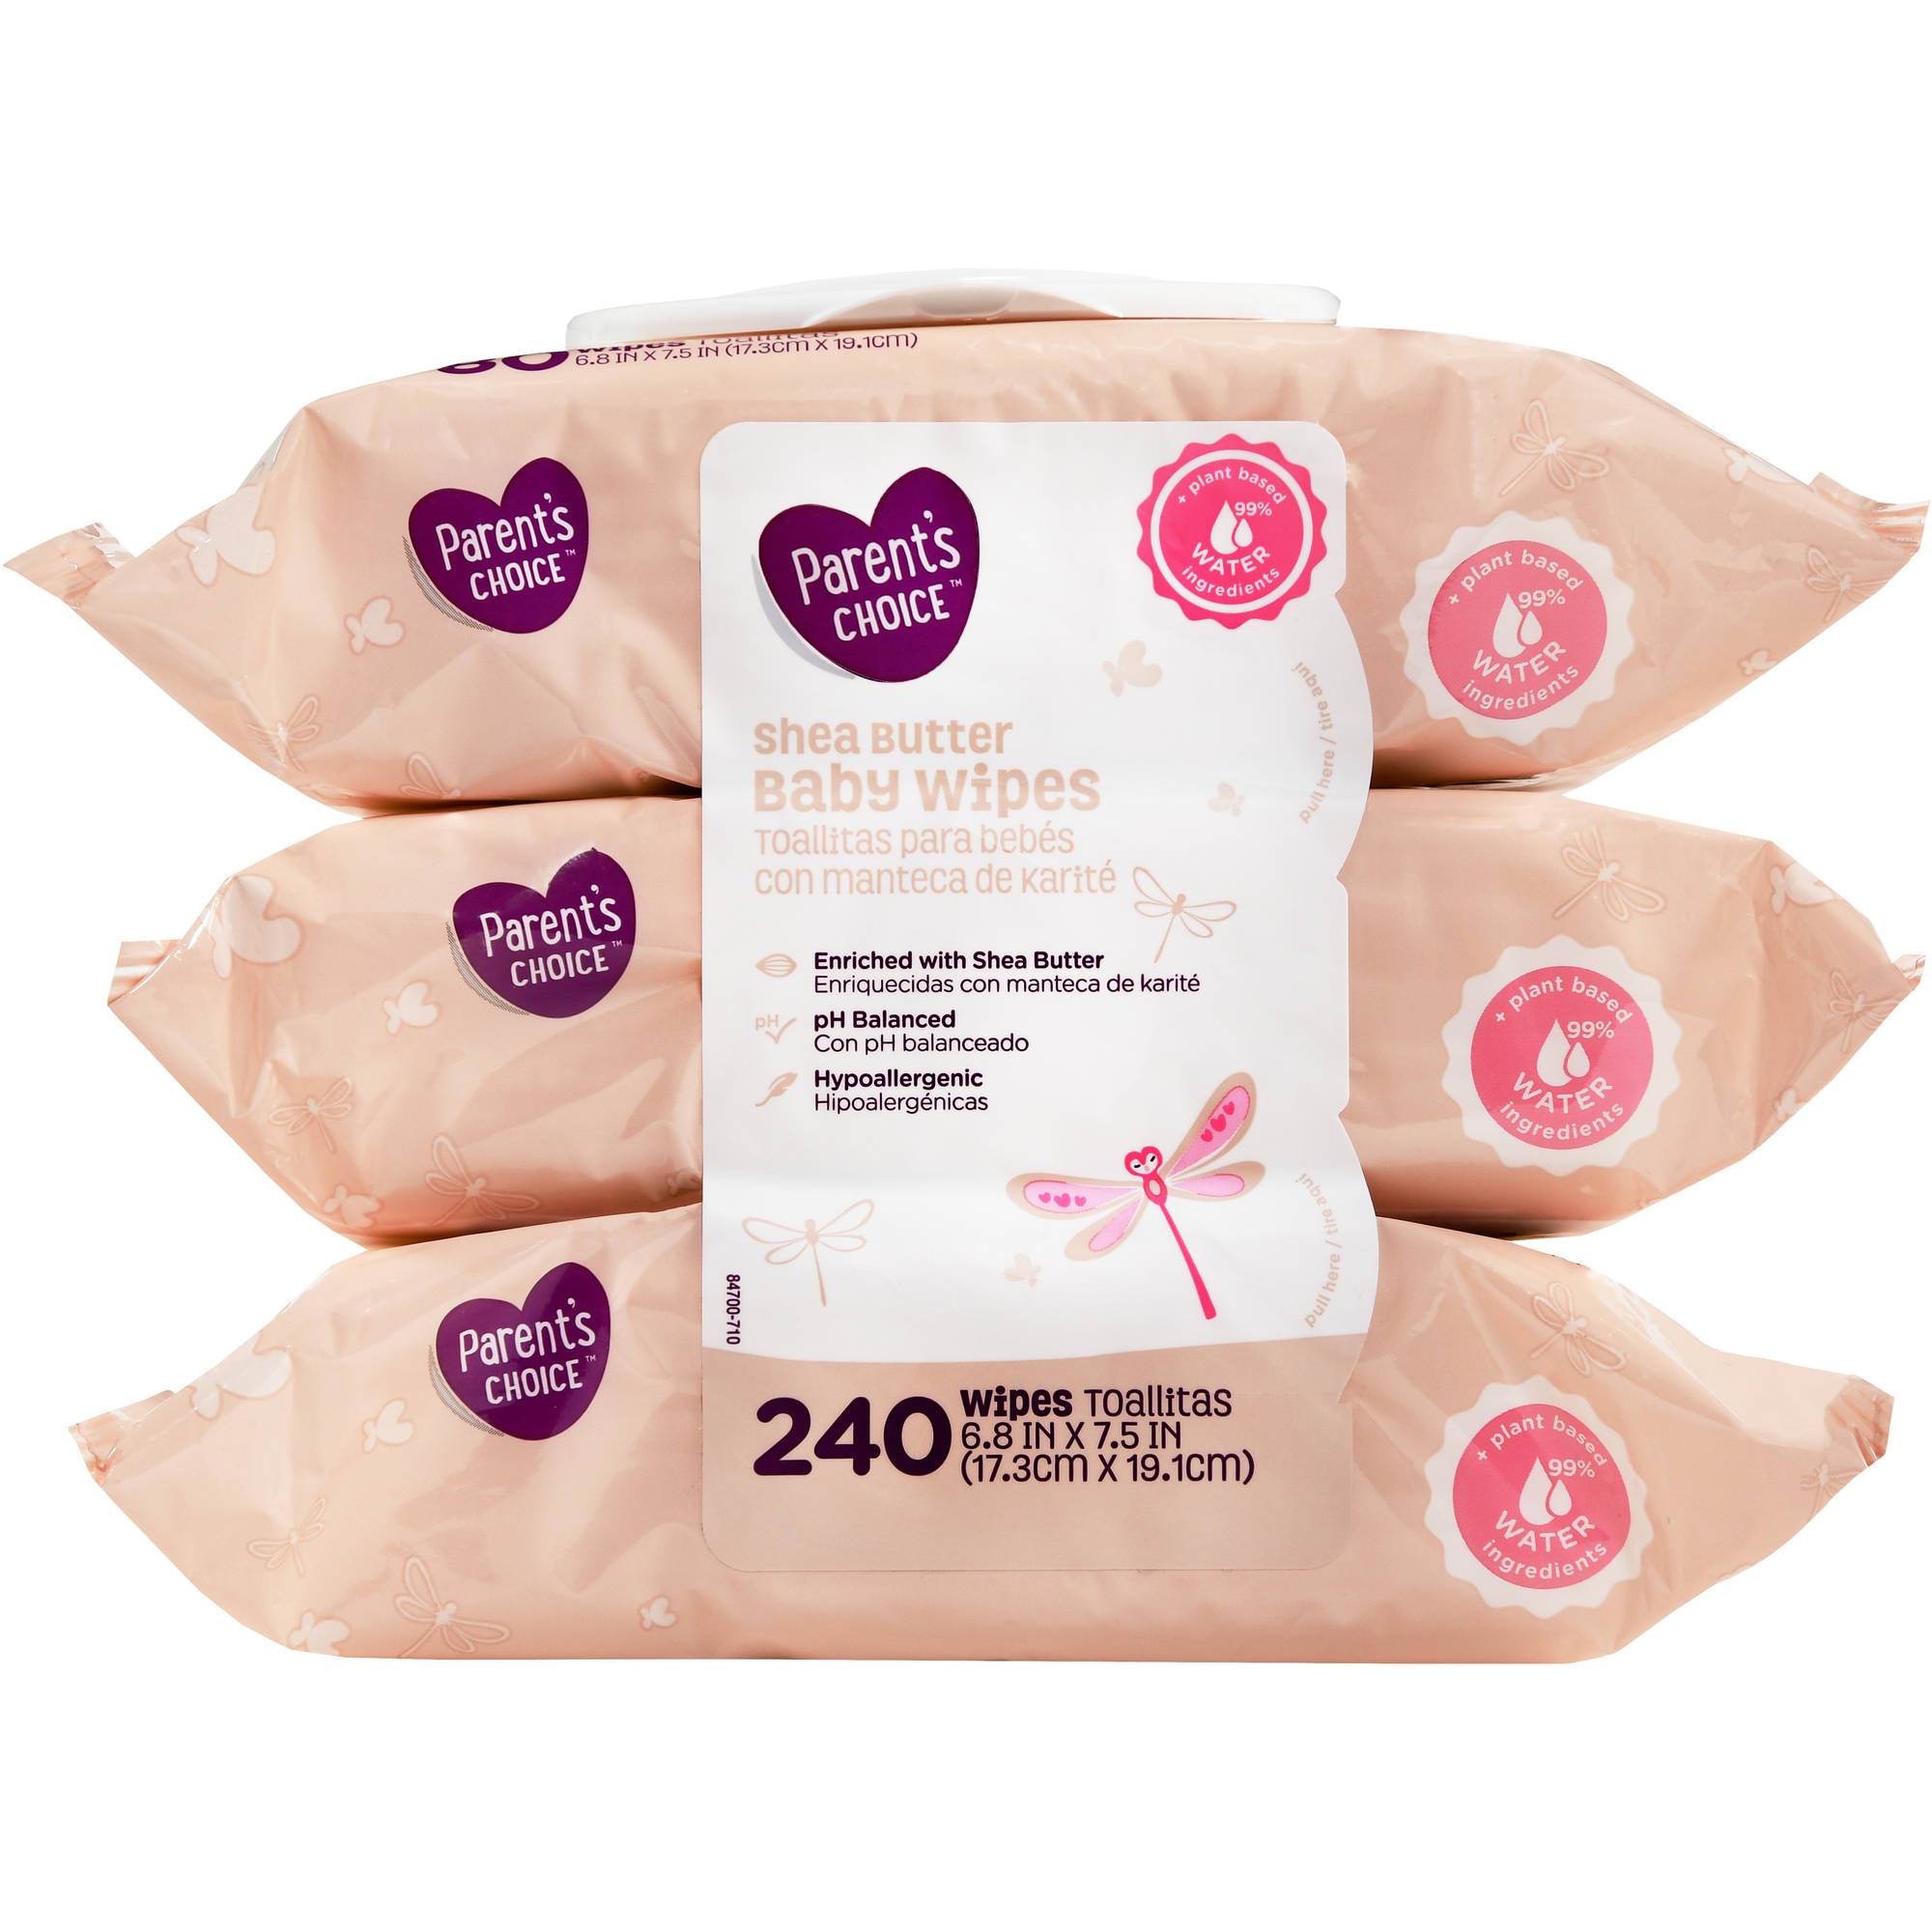 Parent's Choice Soothing Shea Butter Wipes, 240 sheets